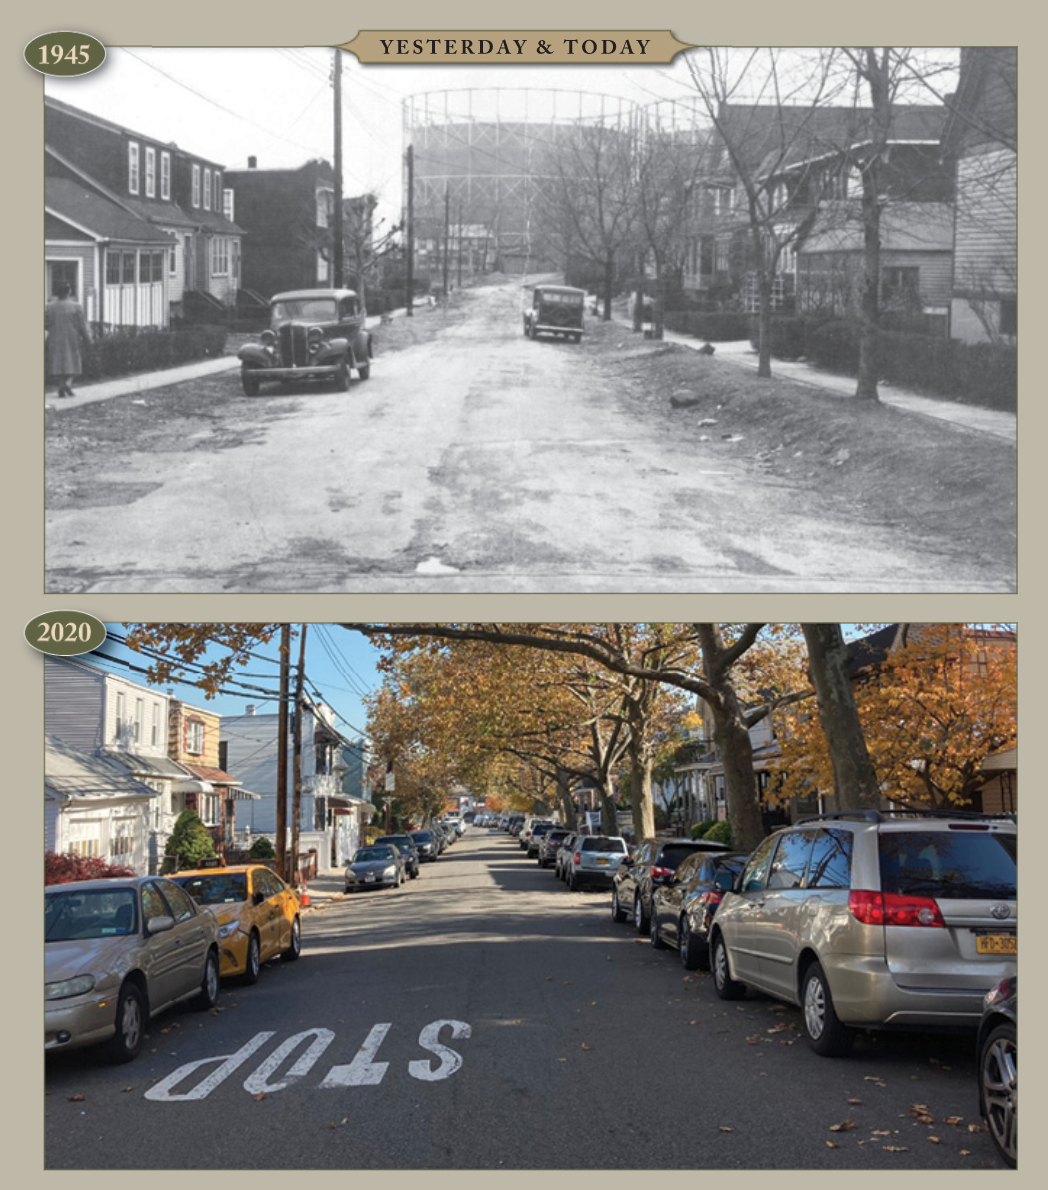 Yesterday & Today: 53rd Road, facing east from 73rd Place